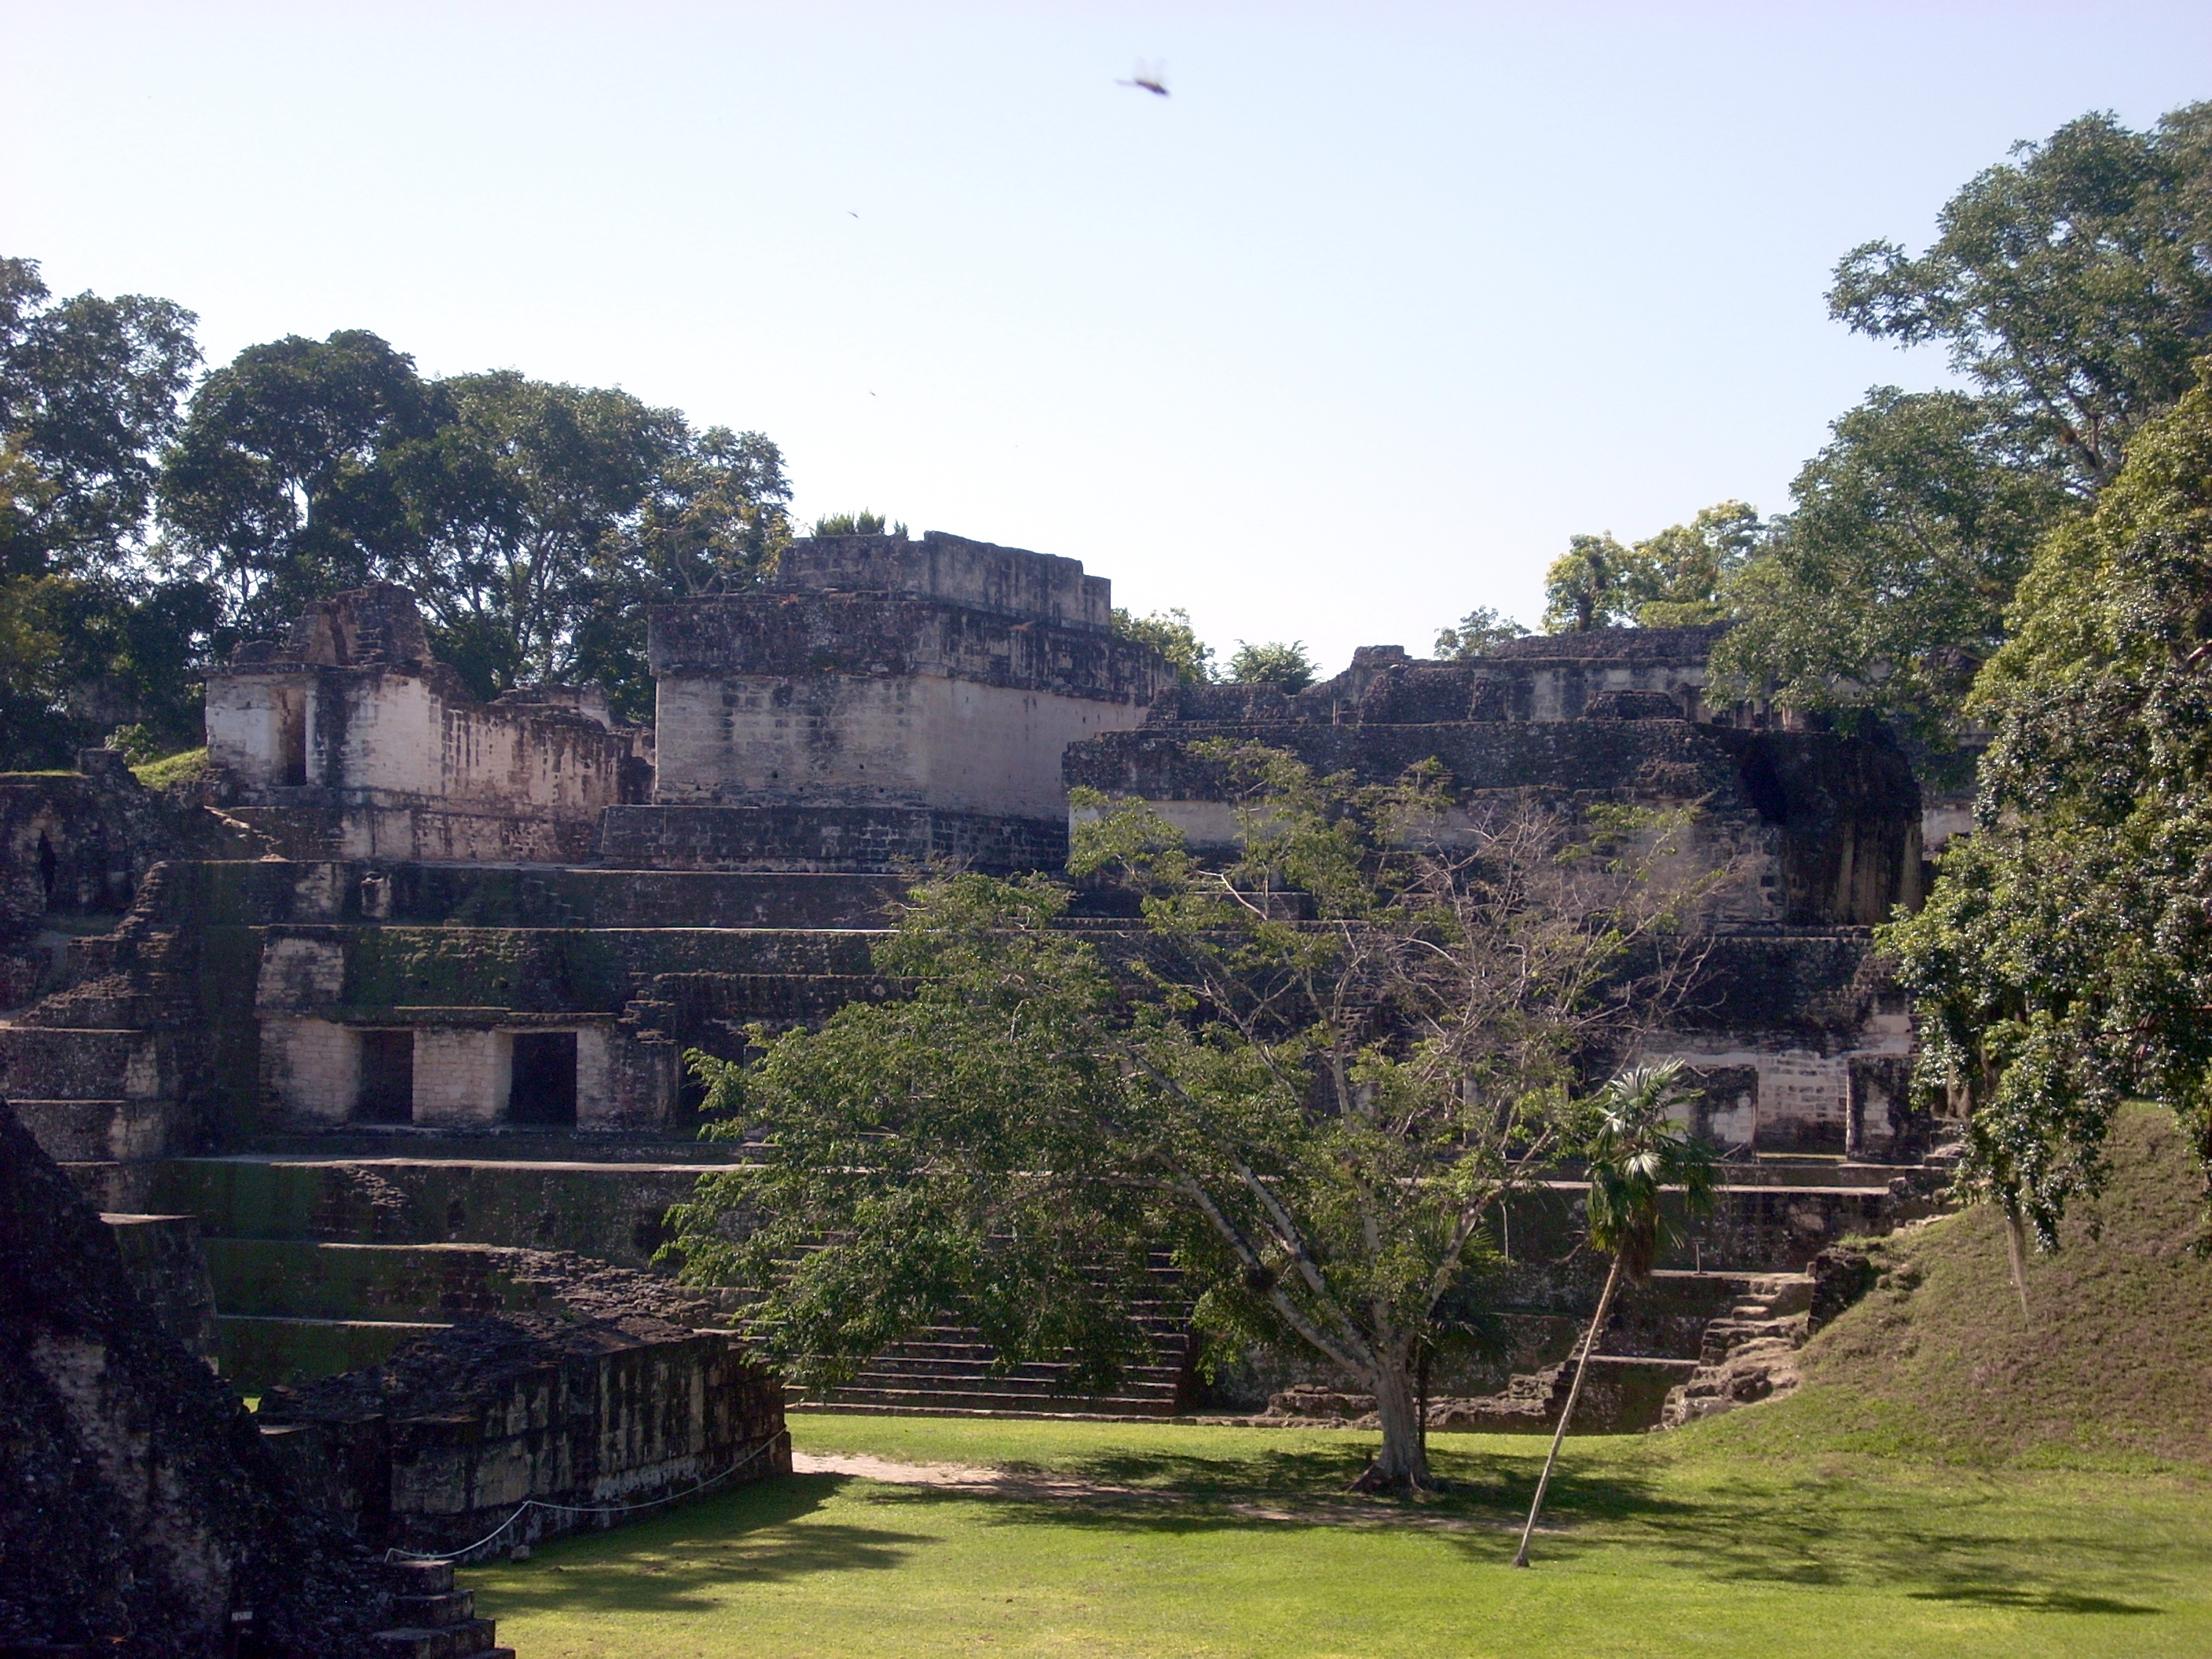 Tikal's Central Acropolis, seen here across the city's Great Plaza, would have drained into the Palace Reservoir.